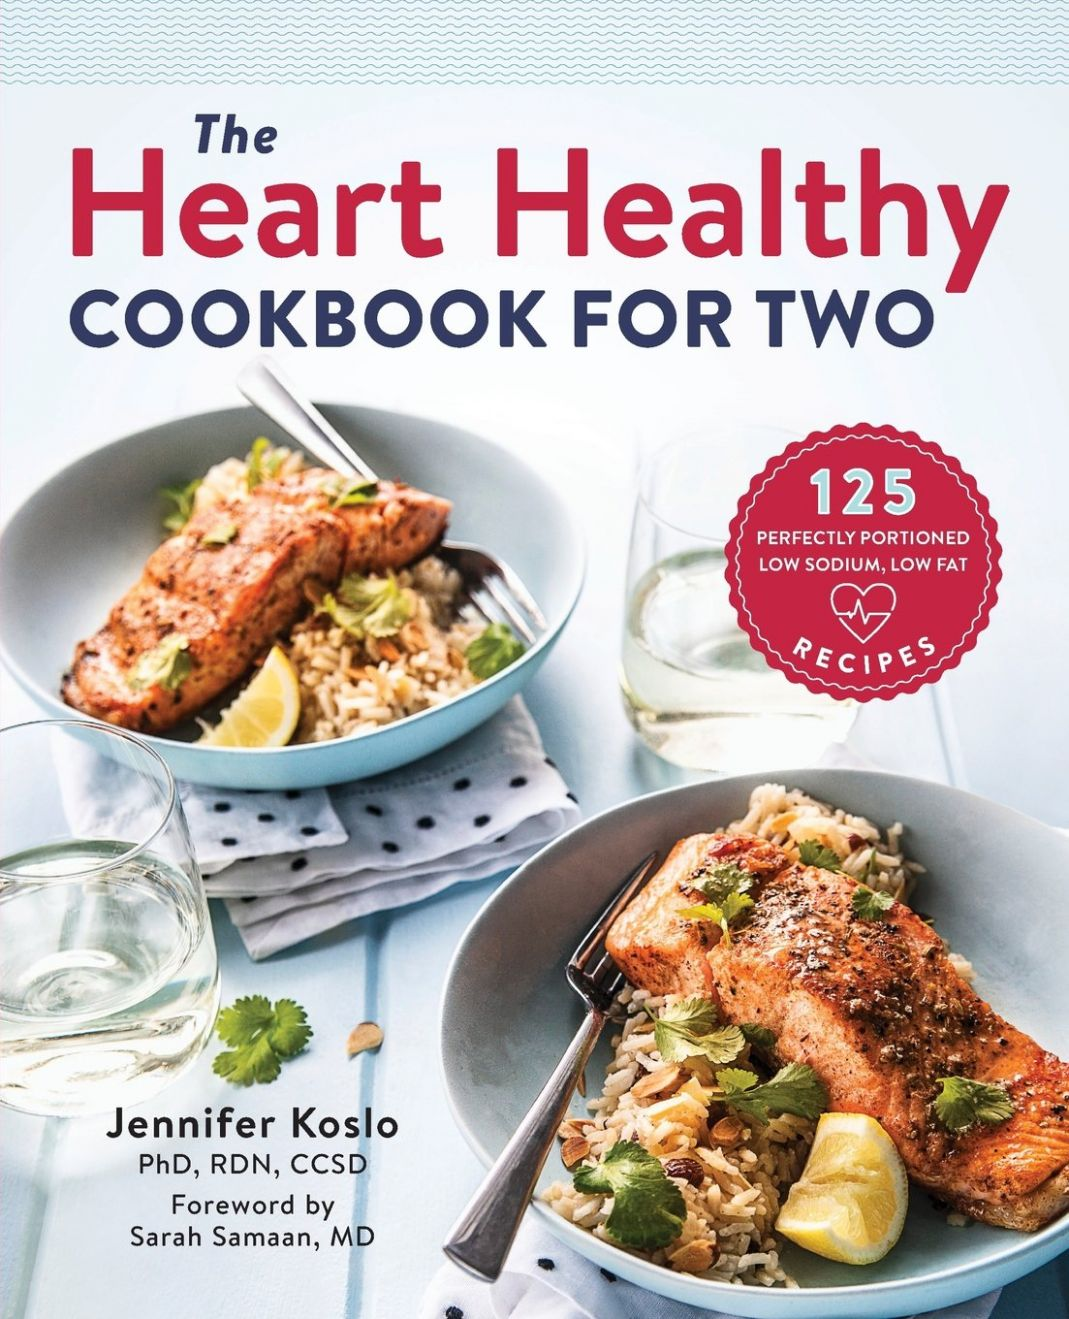 The Heart Healthy Cookbook for Two: 9 Perfectly Portioned Low ...